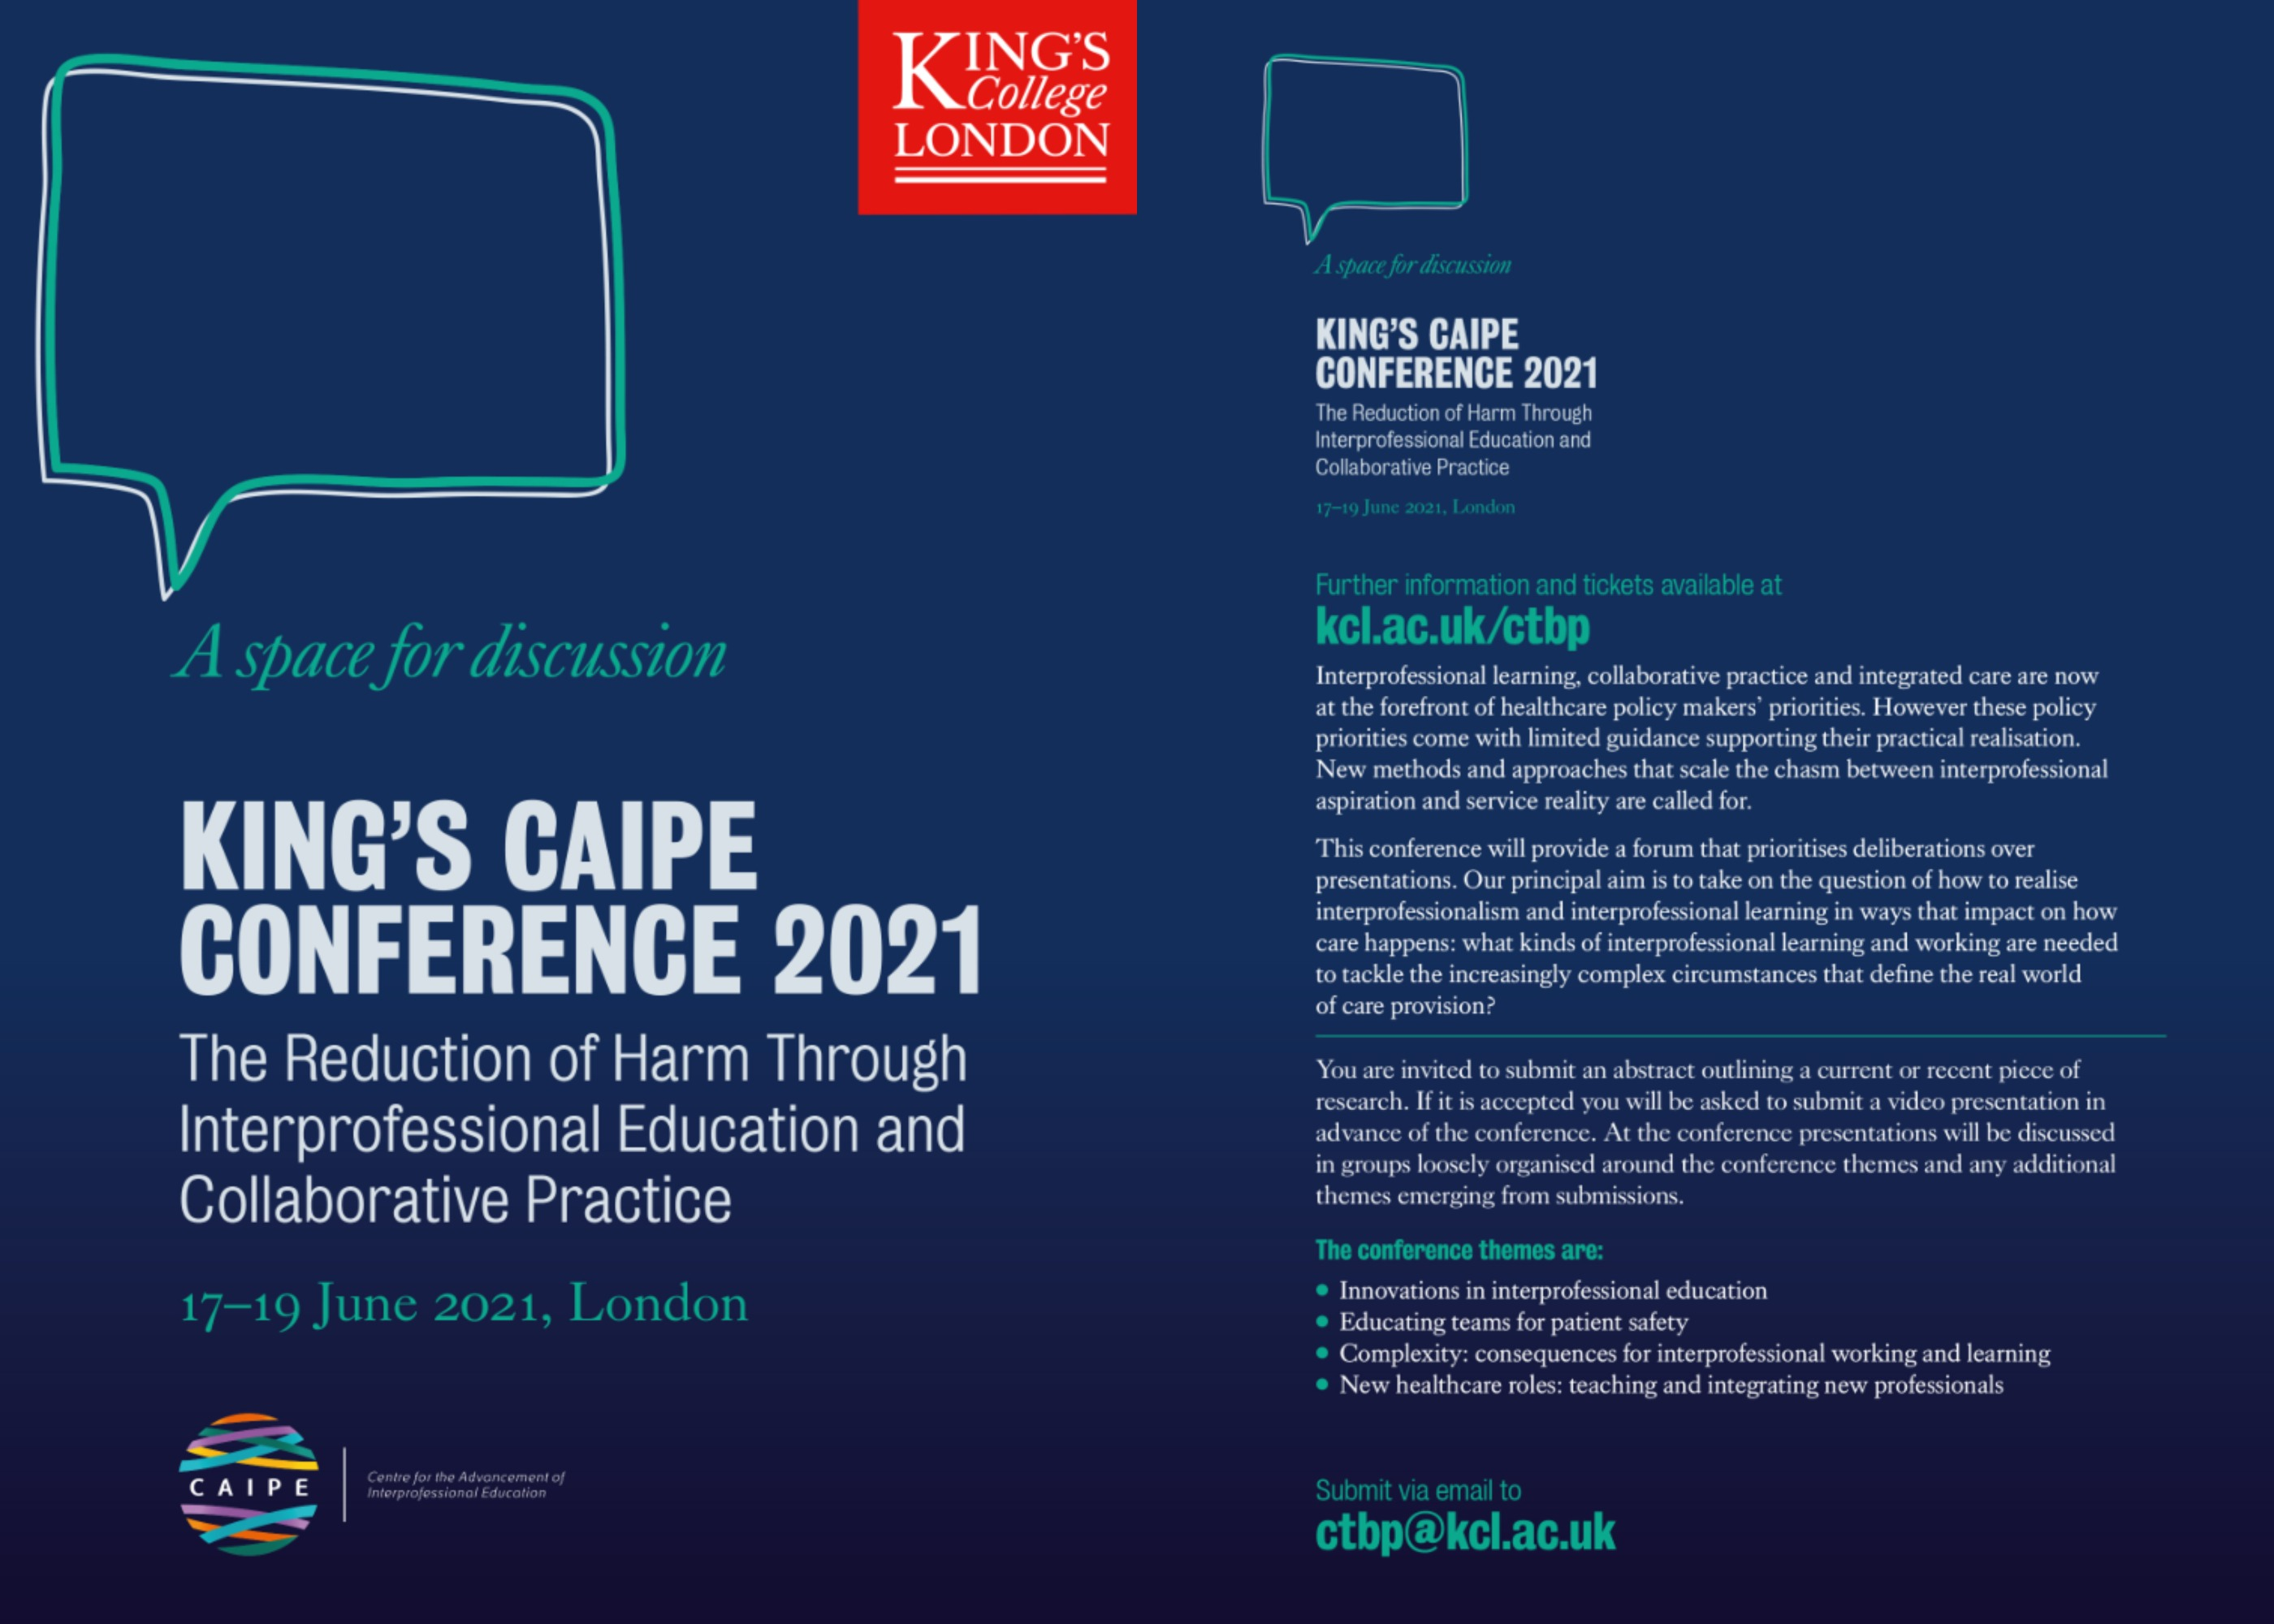 King's CAIPE Conference 2021 flyer side